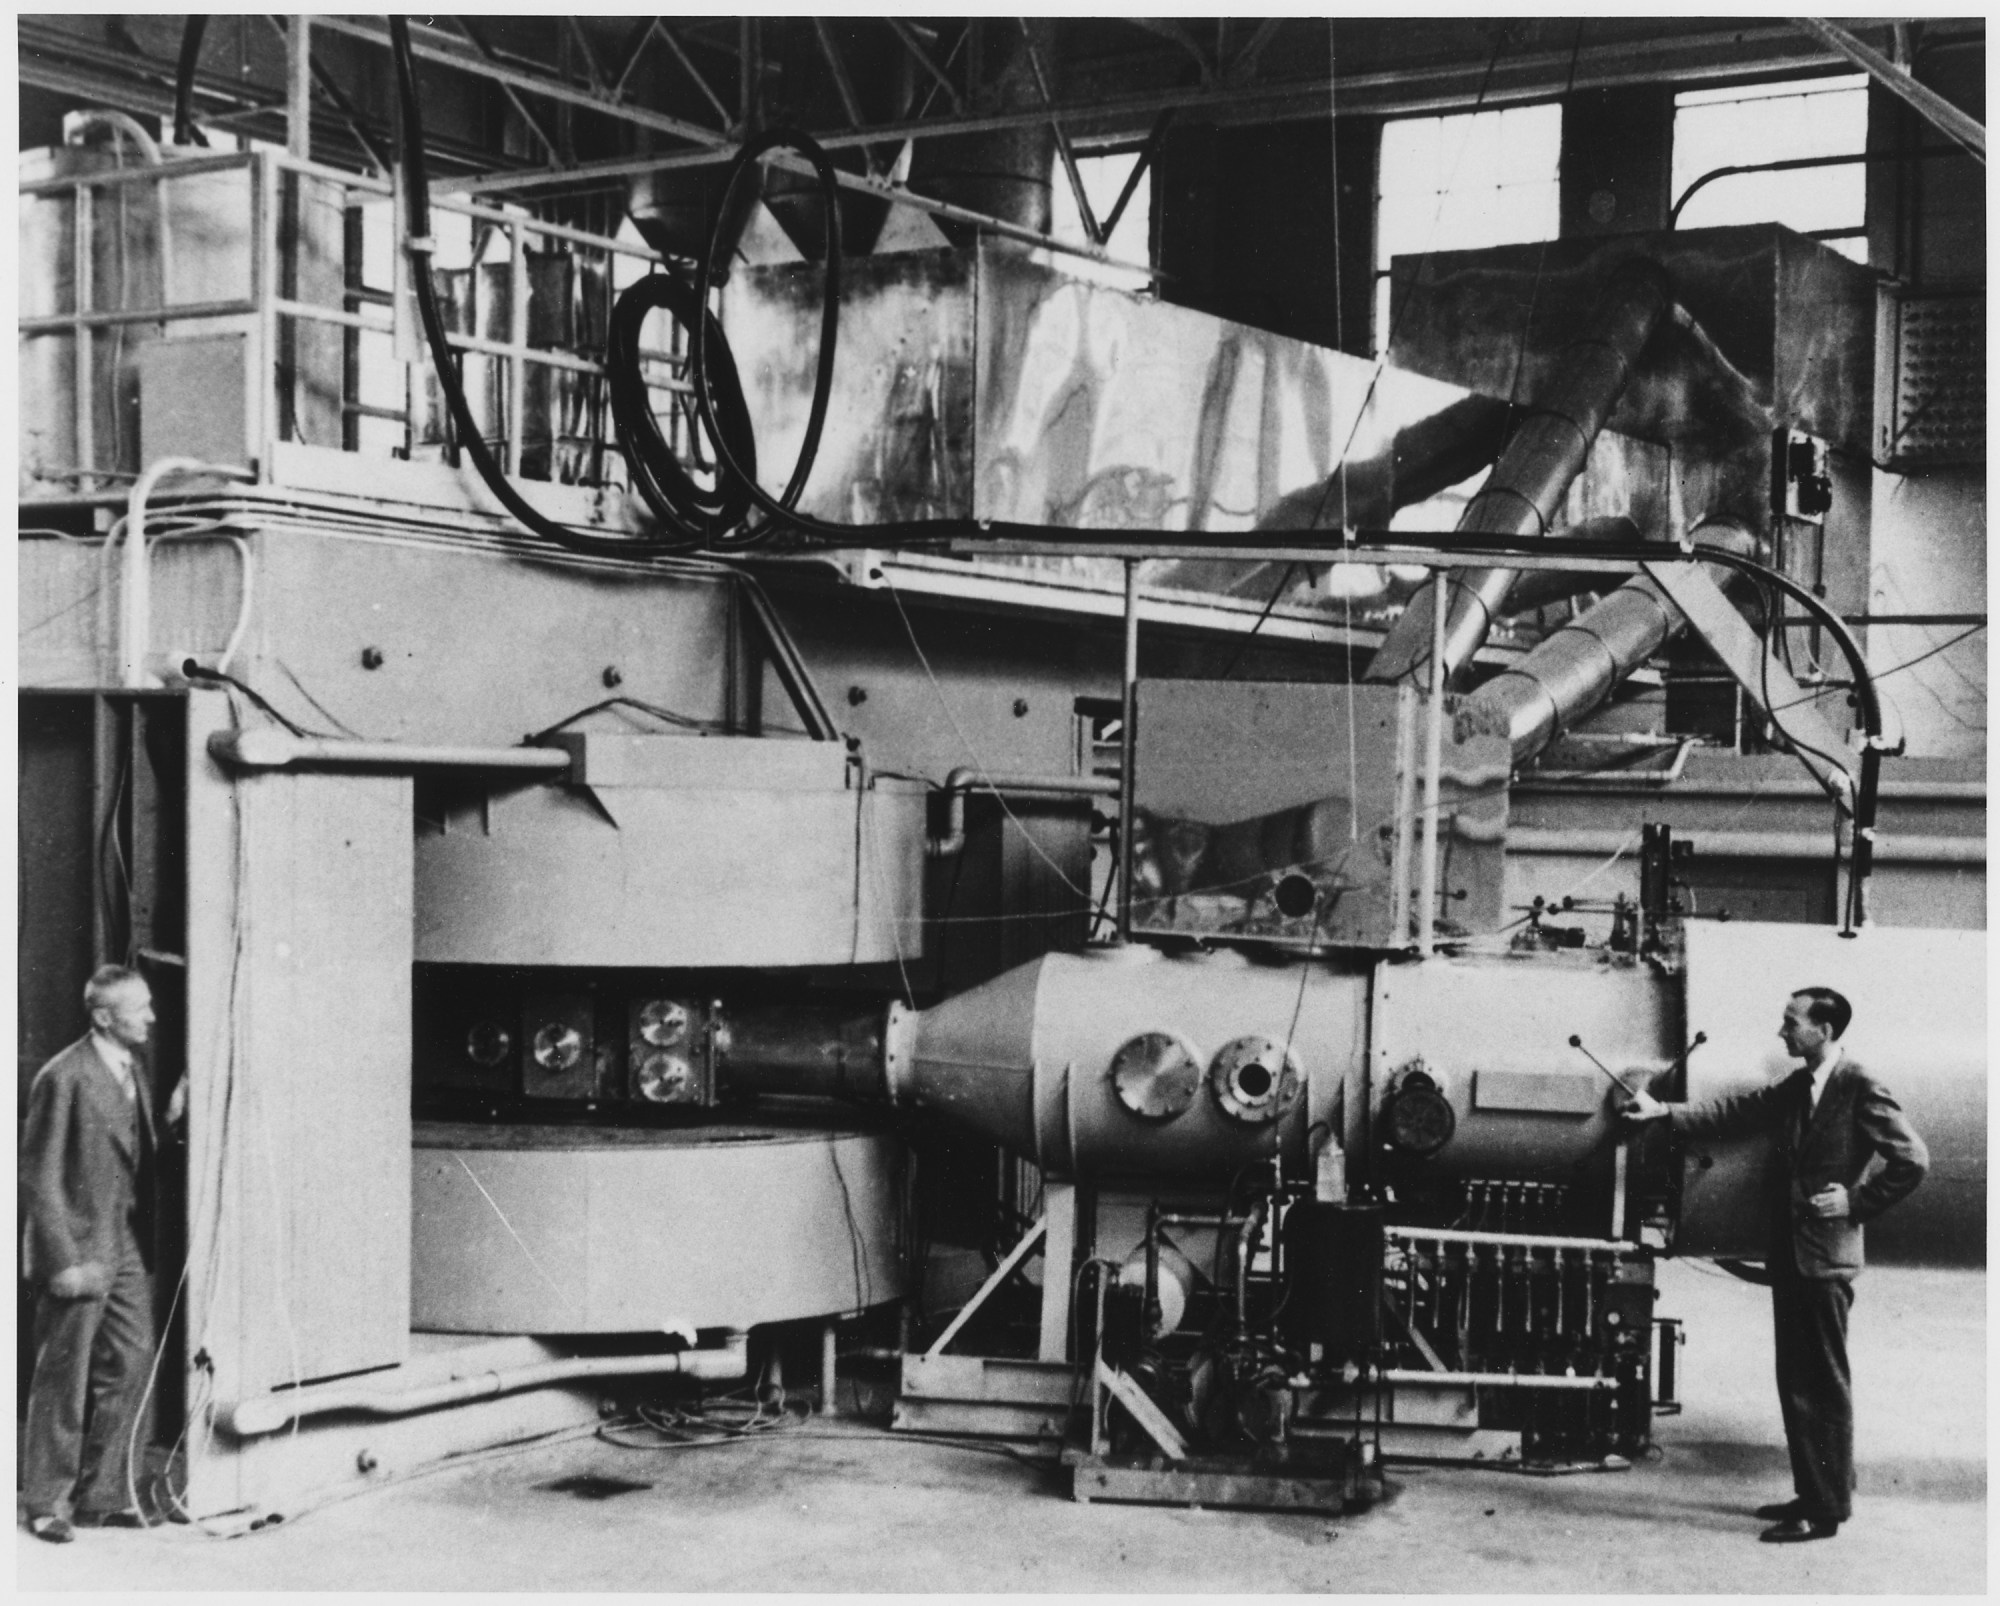 hight resolution of cyclotron wikipedia diagram of the first successful cyclotron constructed by lawrence and